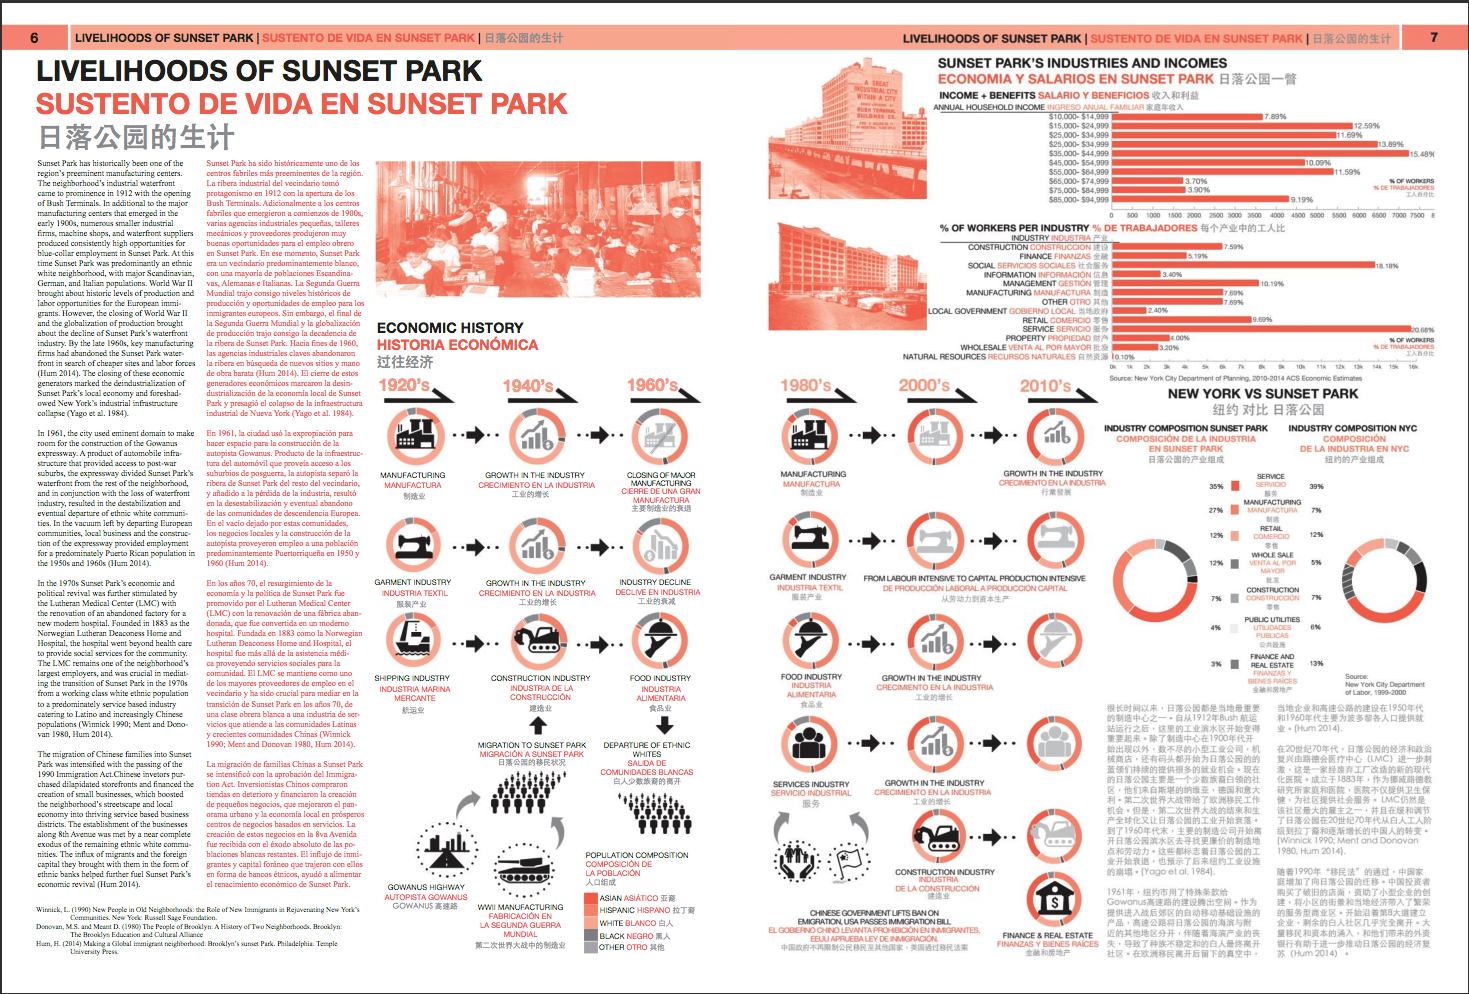 The Sunset Park Gazette   Parsons Studio/Friends of Sunset Park Publication - 2016  Using methodologies including participatory mapping, interviews with community residents, surveys, and intensive secondary source research, a multilingual newspaper was designed and distributed to detail in a legible and approachable way the severity of housing and school overcrowding in the neighborhood of Sunset Park in Brooklyn.